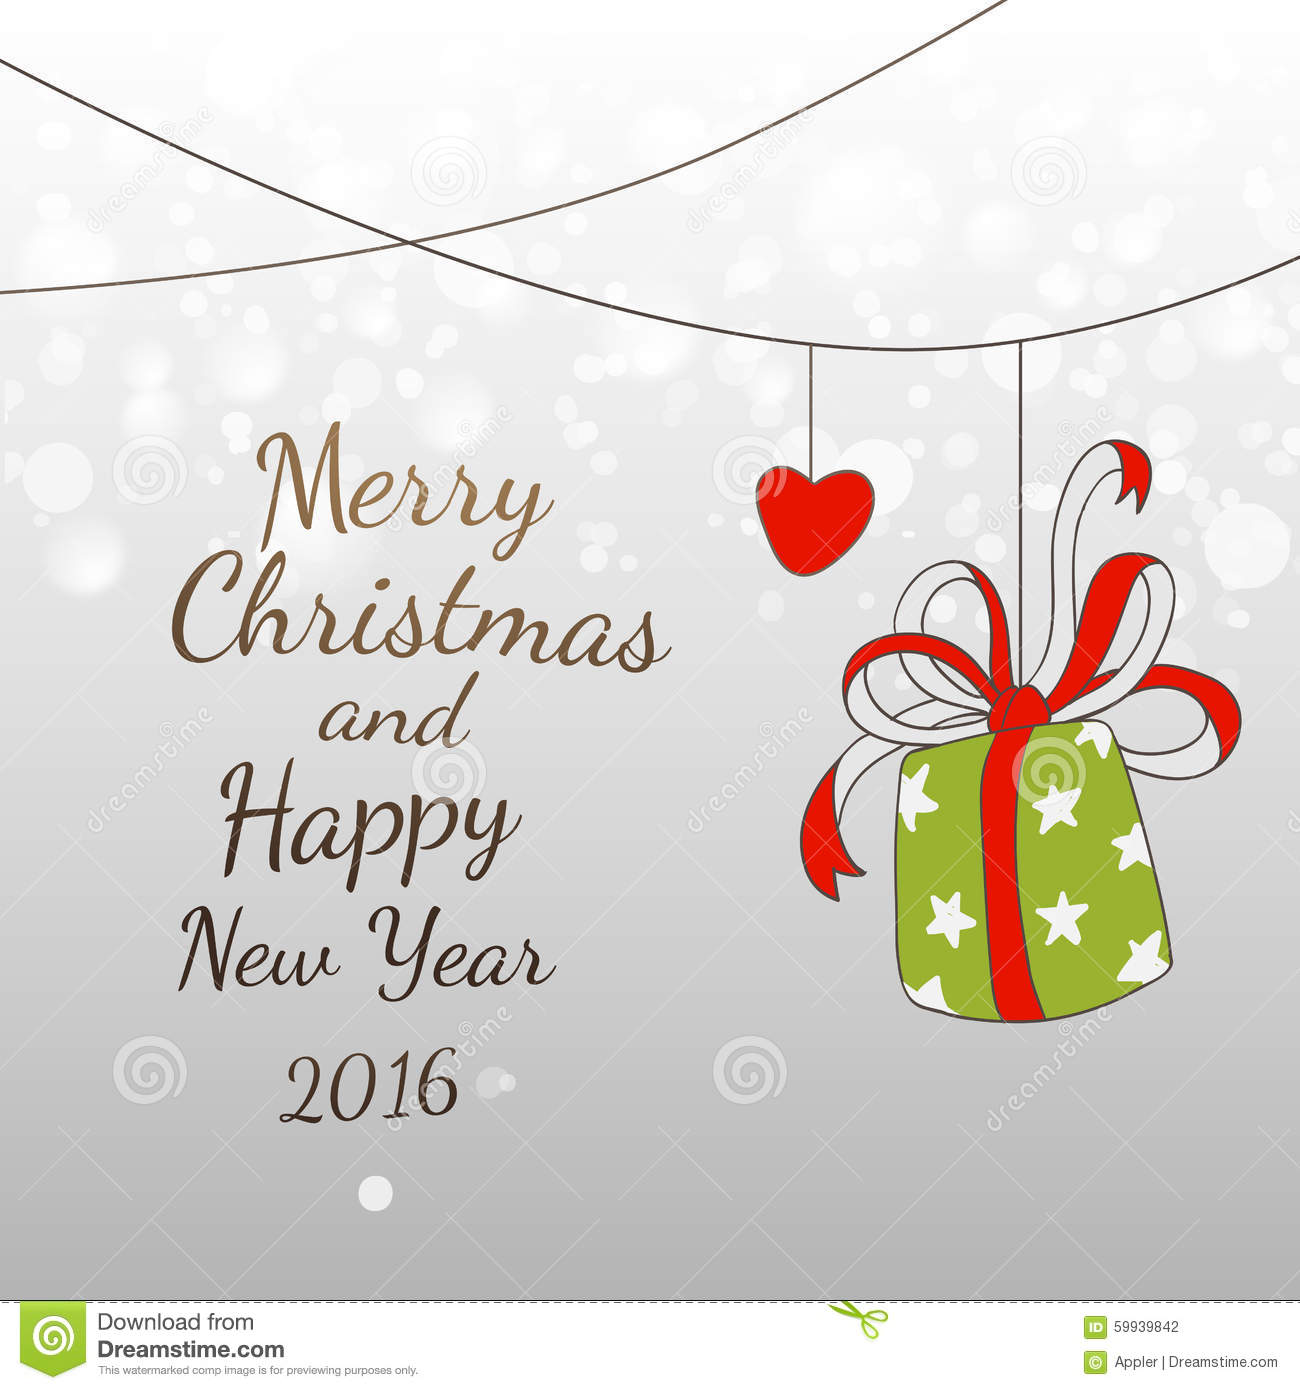 Easy Year To Travel On Christmas: Doodles New YEar And Xmas 2016 Easy Fun Card Design Stock